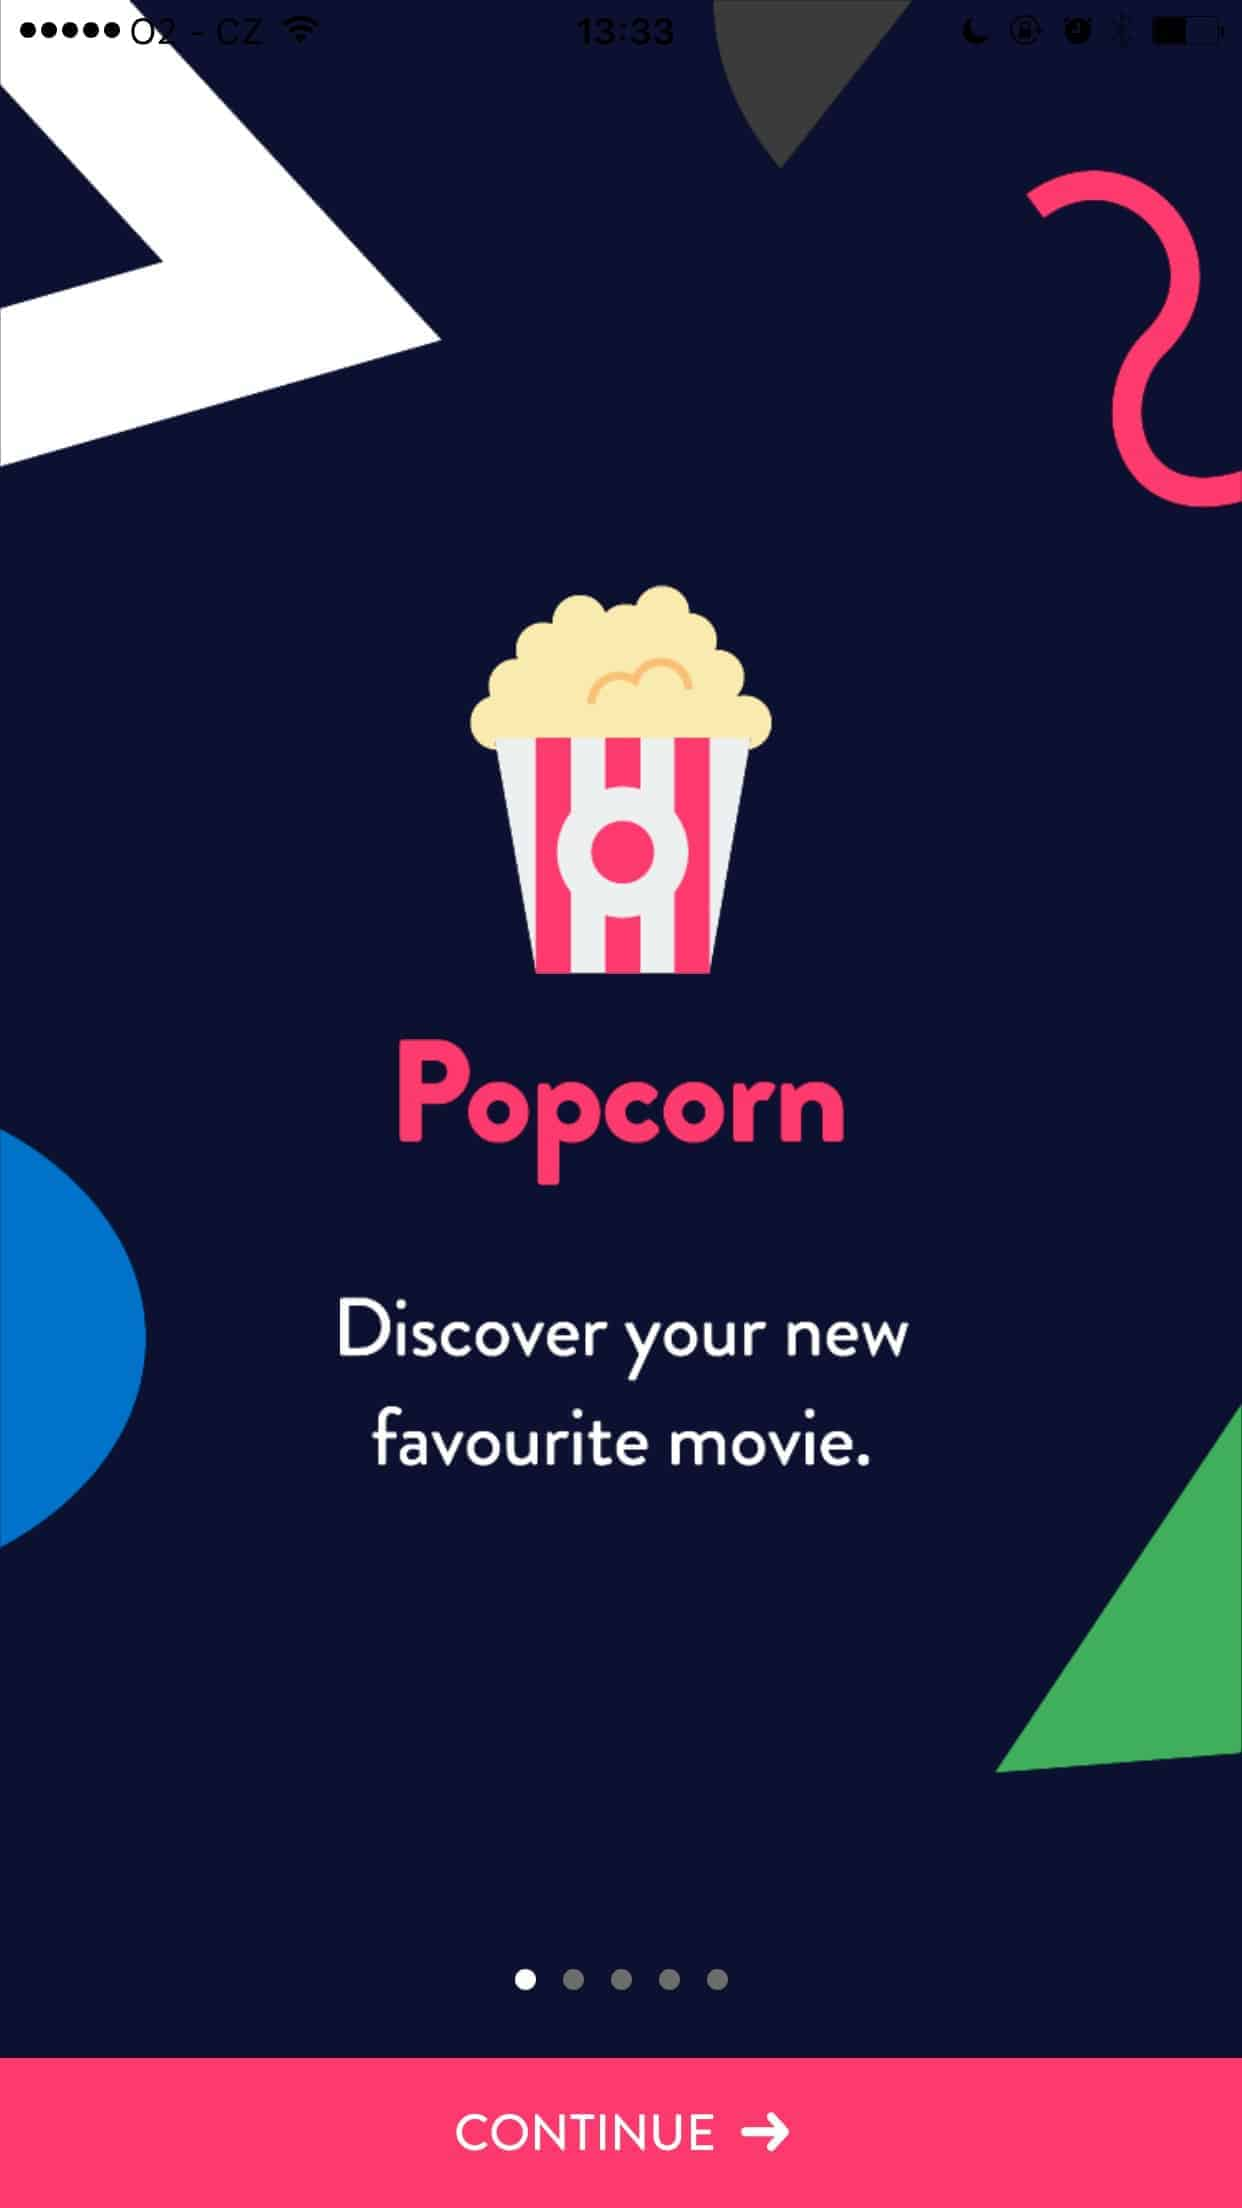 Walkthrough on iOS by Popcorn from UIGarage